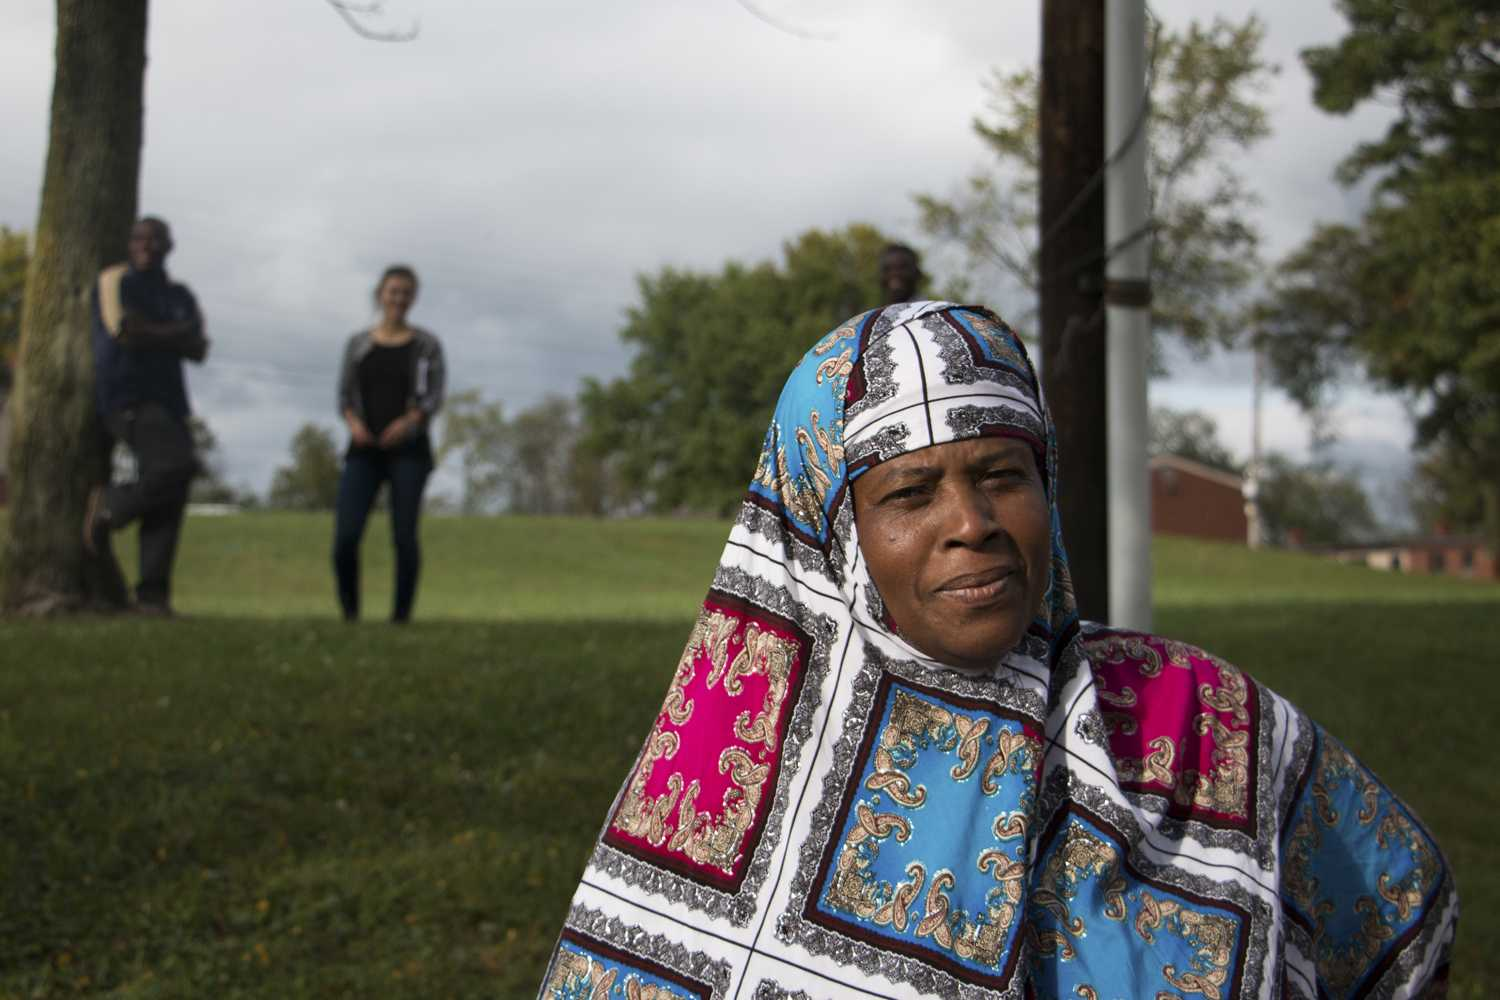 Bint Amiri, a Somali native, moved to Northview Heights after living in America for 20 years. (Photo by Christian Snyder | Multimedia Editor)